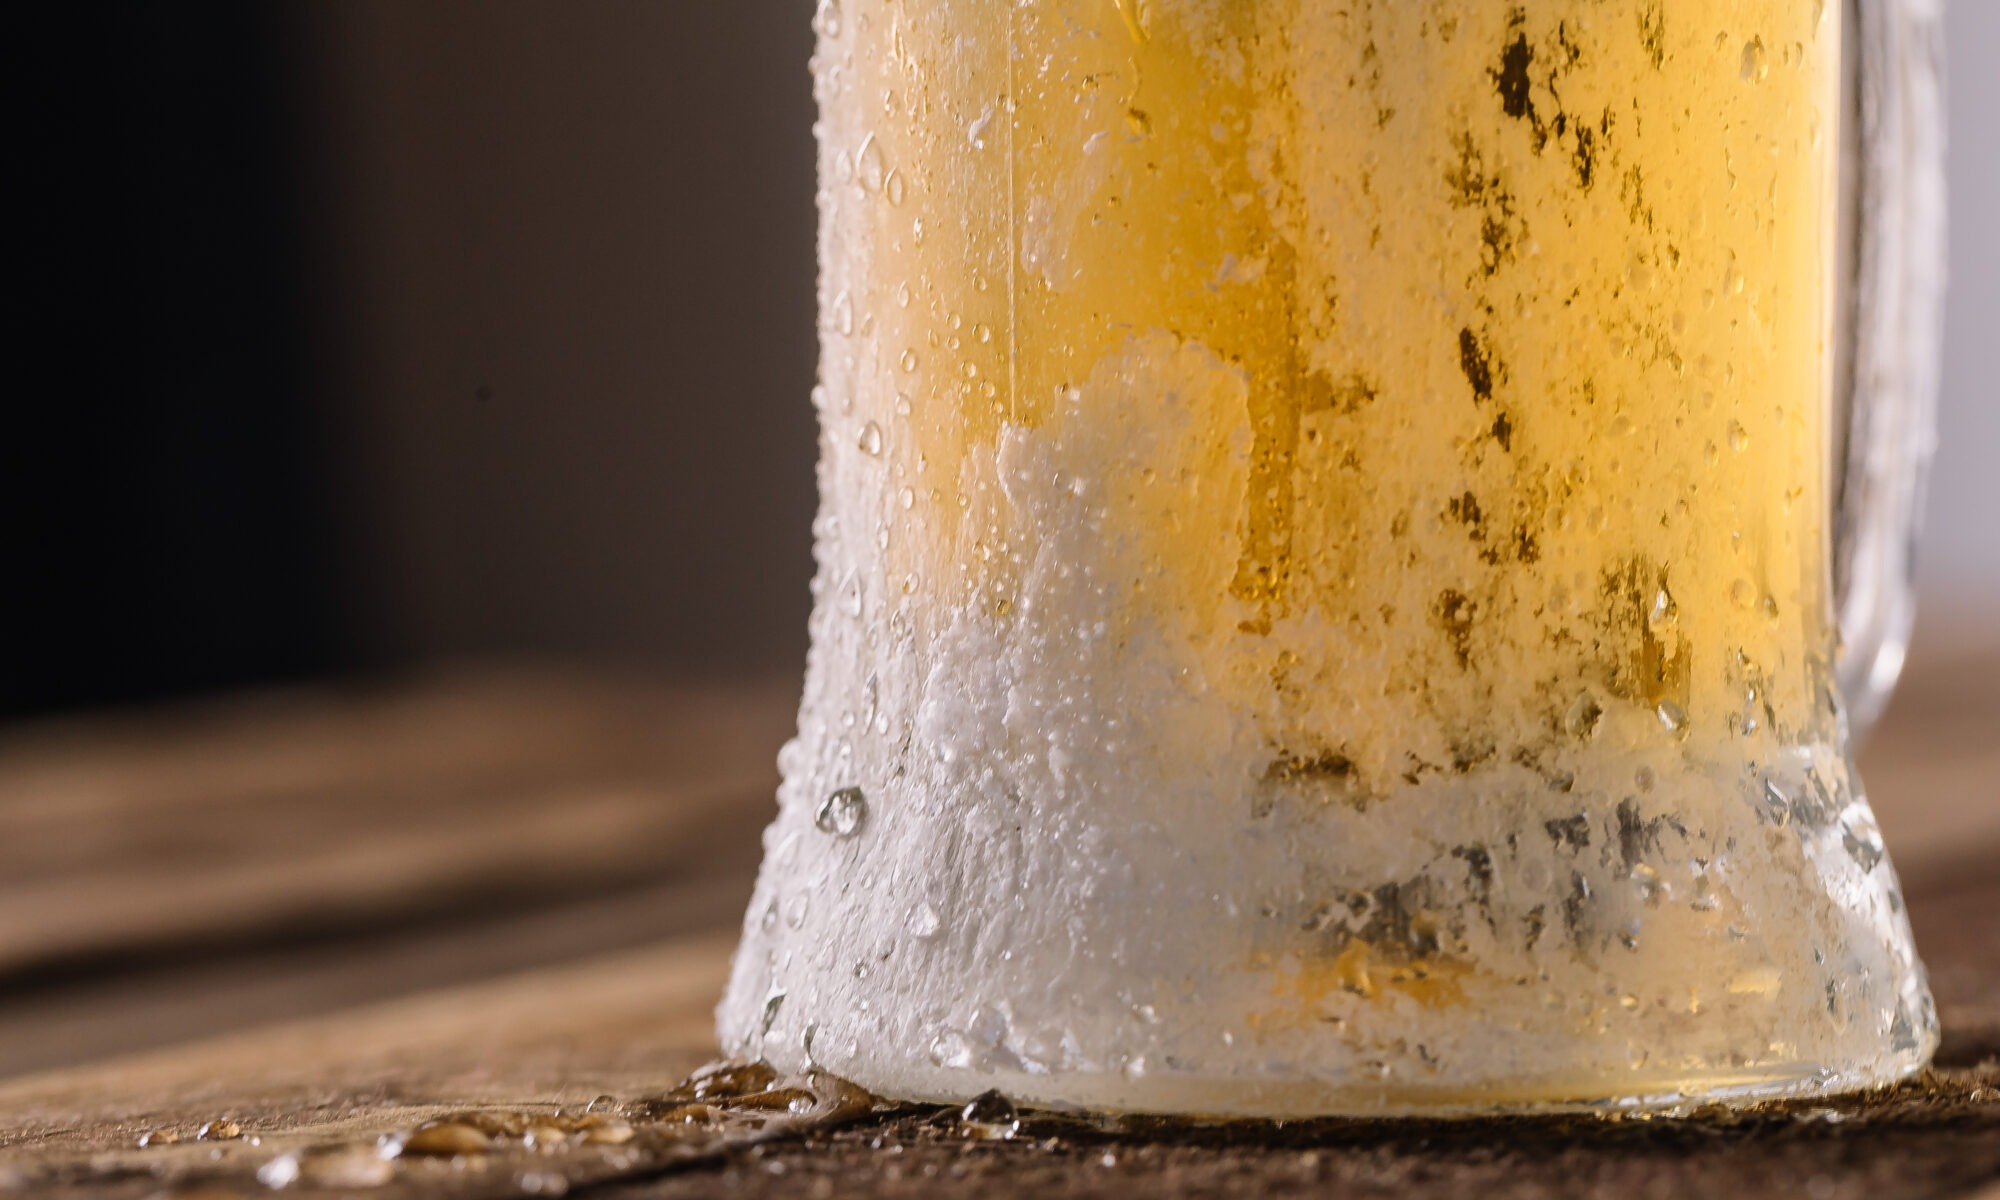 Four Peaks Beer Fact Friday Cold Beer Chilled Glass